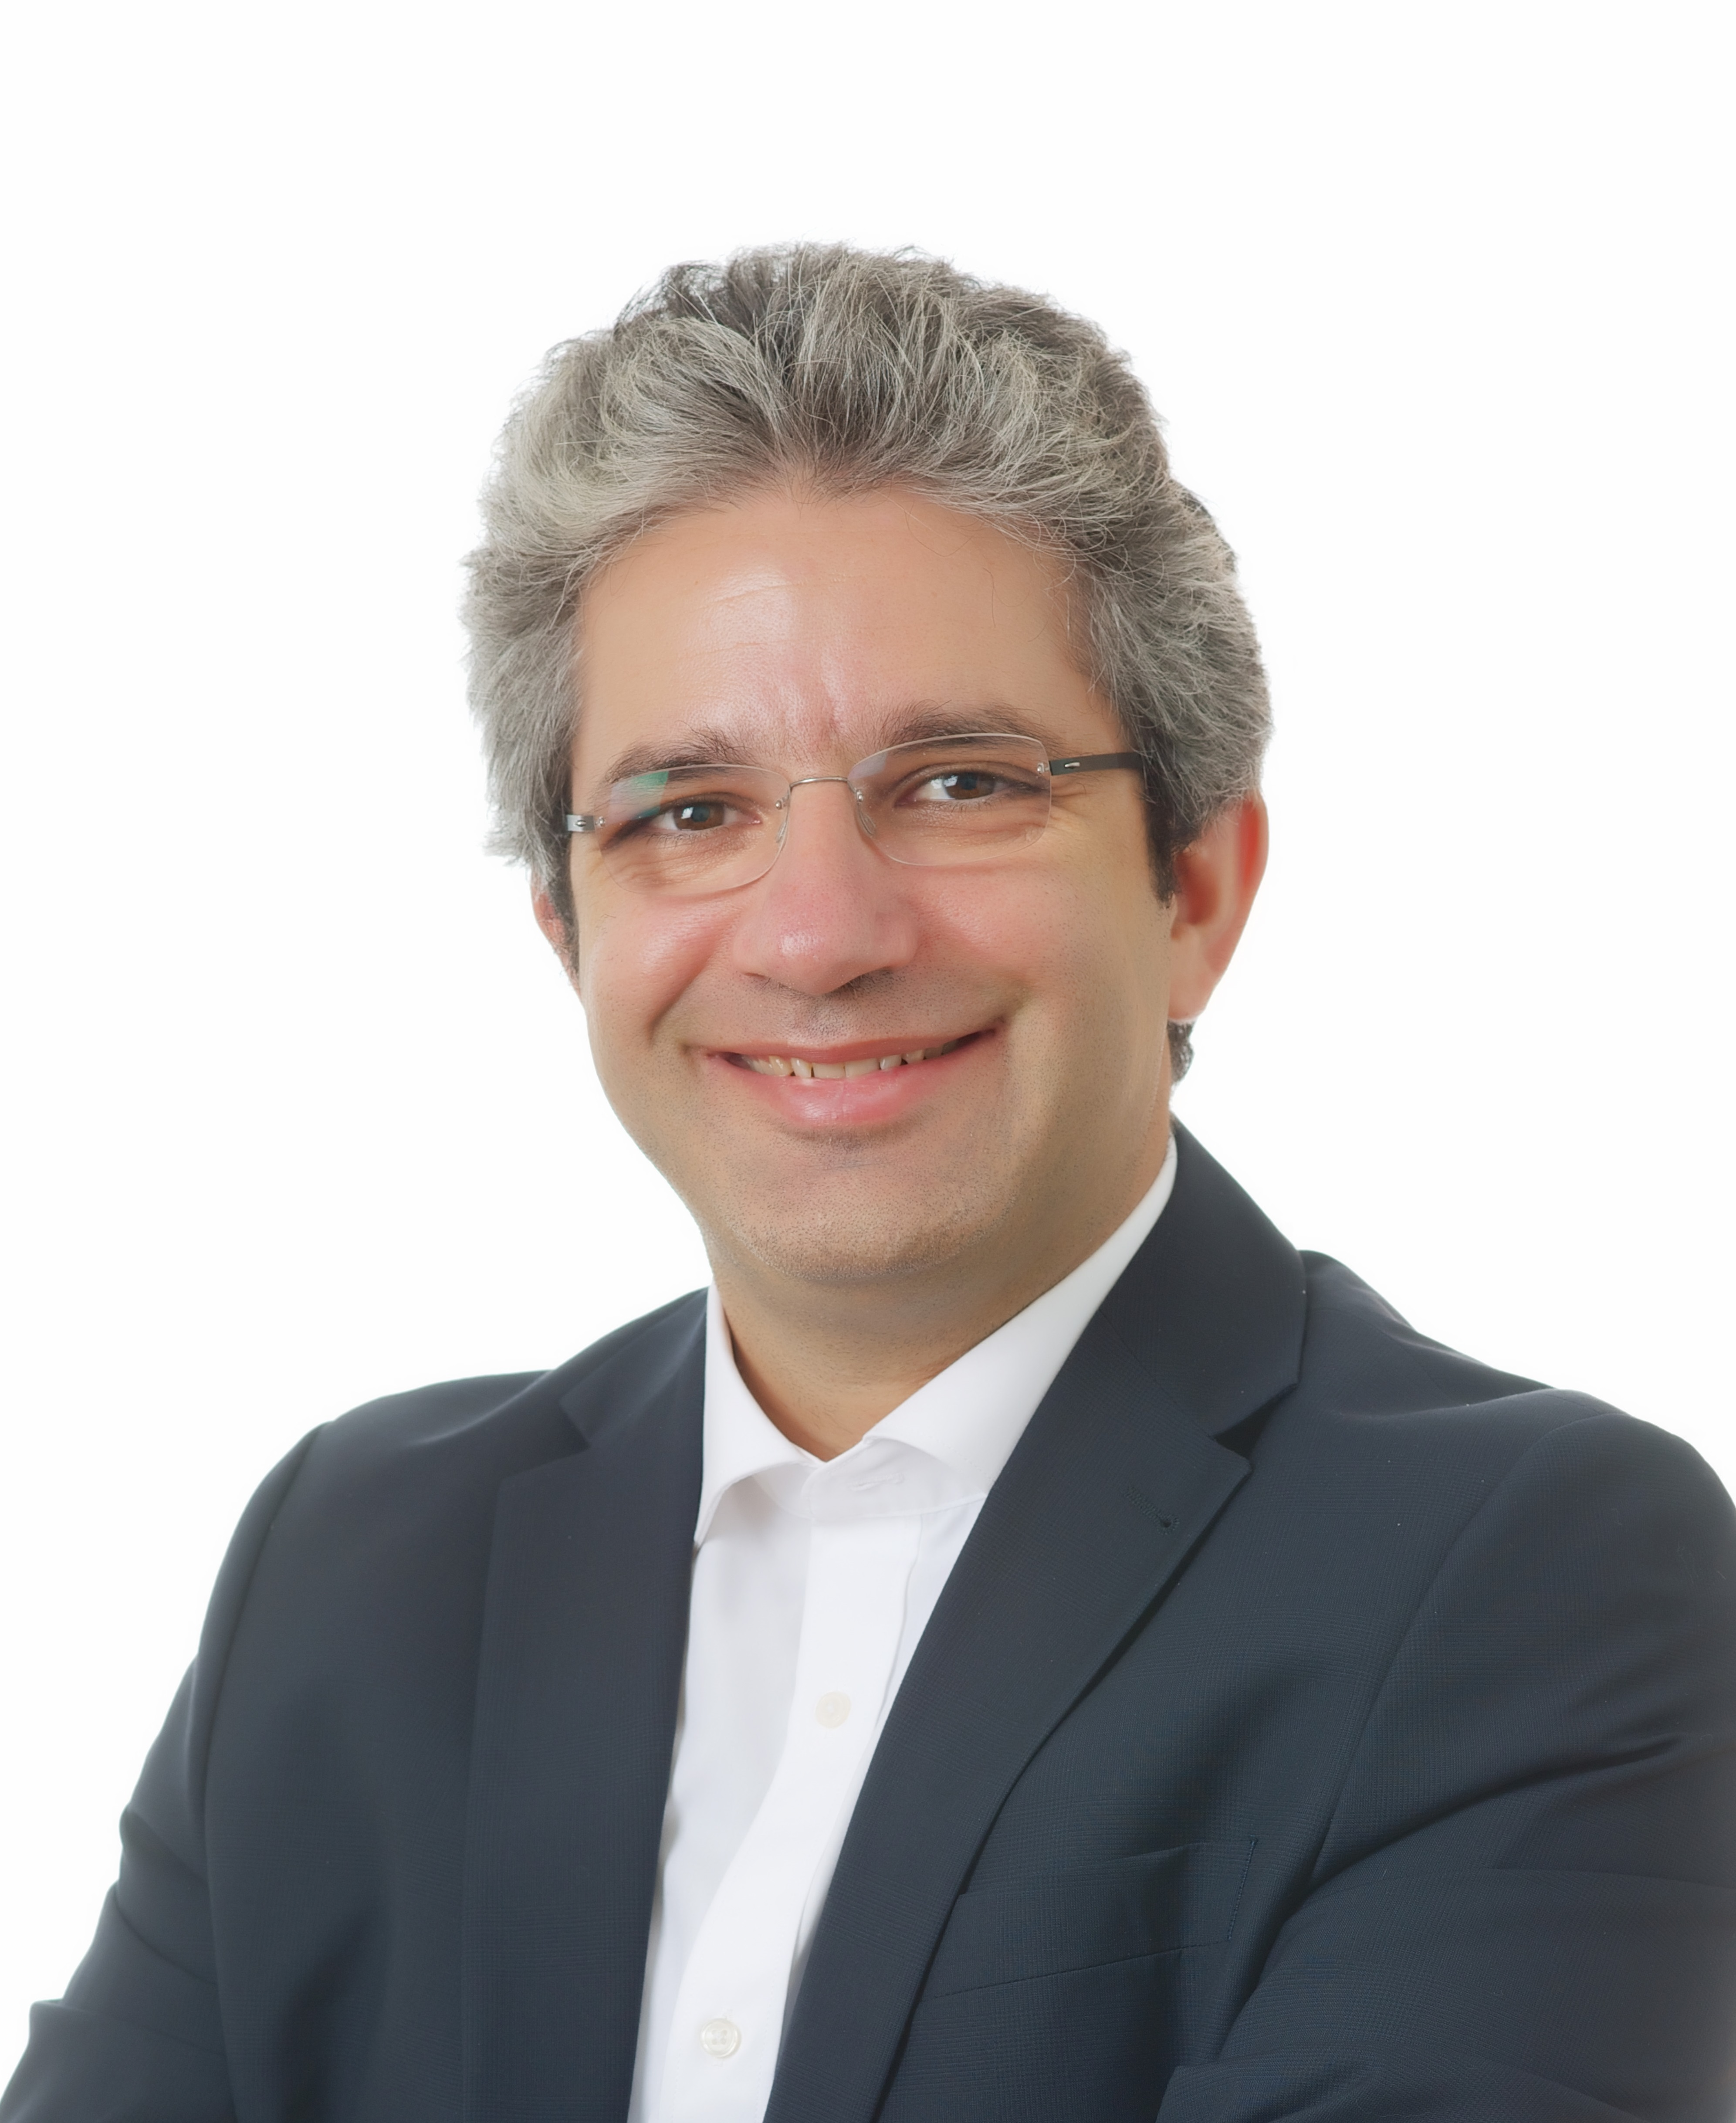 AxiomSL appoints Olivier Kamoun as Chief Product Officer